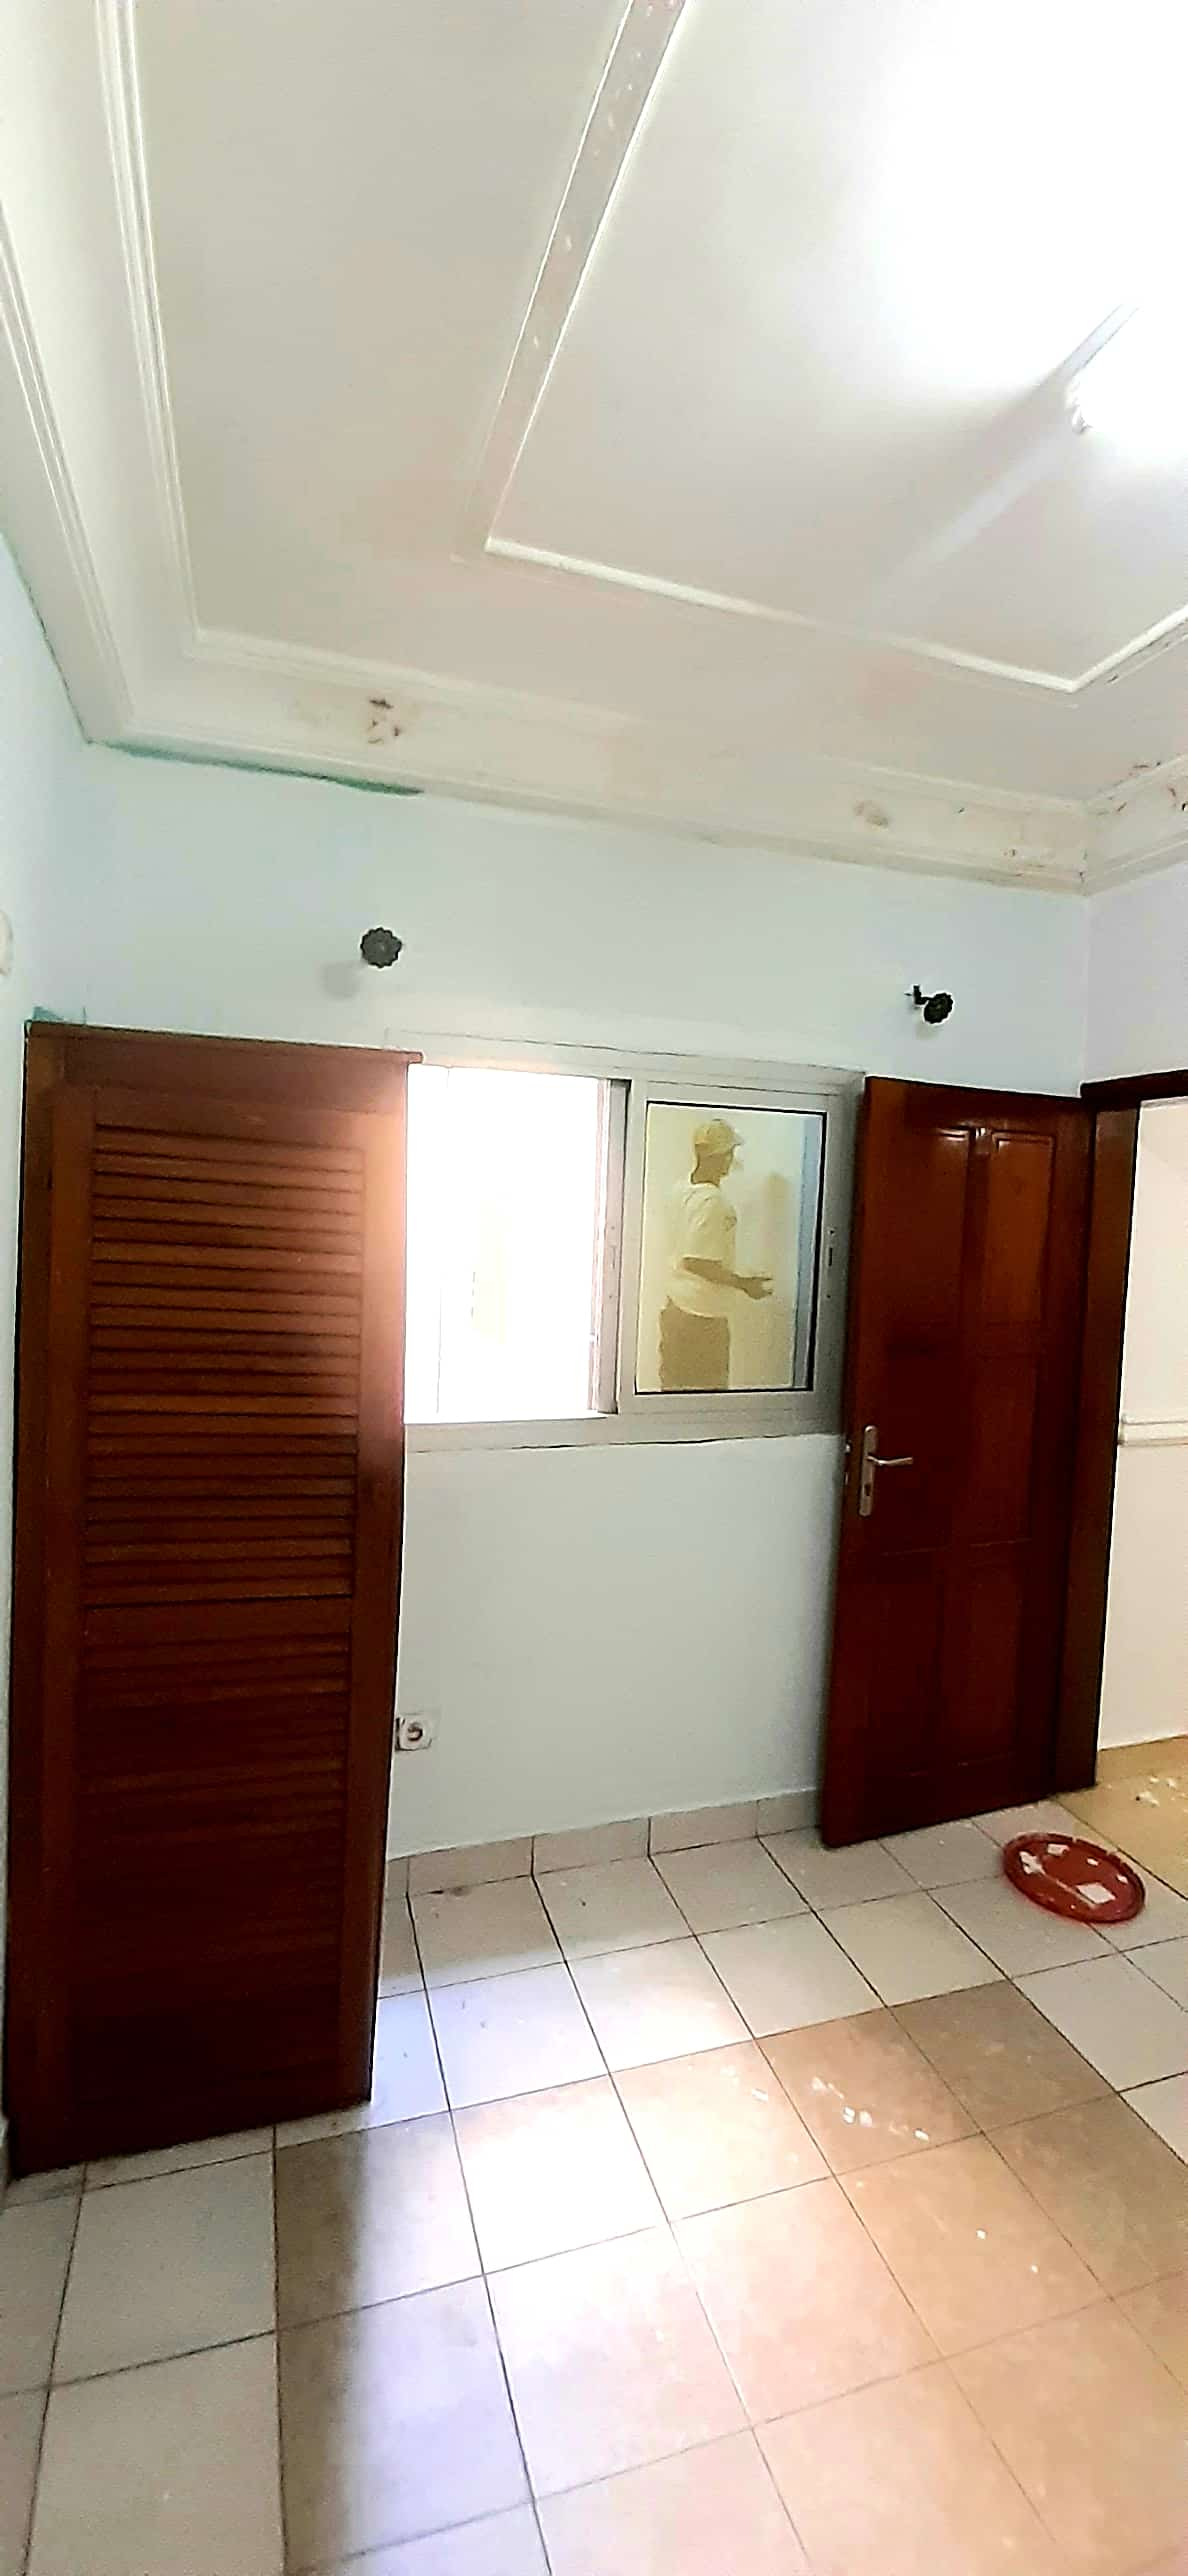 Apartment to rent - Douala, Makepe, Makepe st-Tropez - 1 living room(s), 1 bedroom(s), 1 bathroom(s) - 85 000 FCFA / month